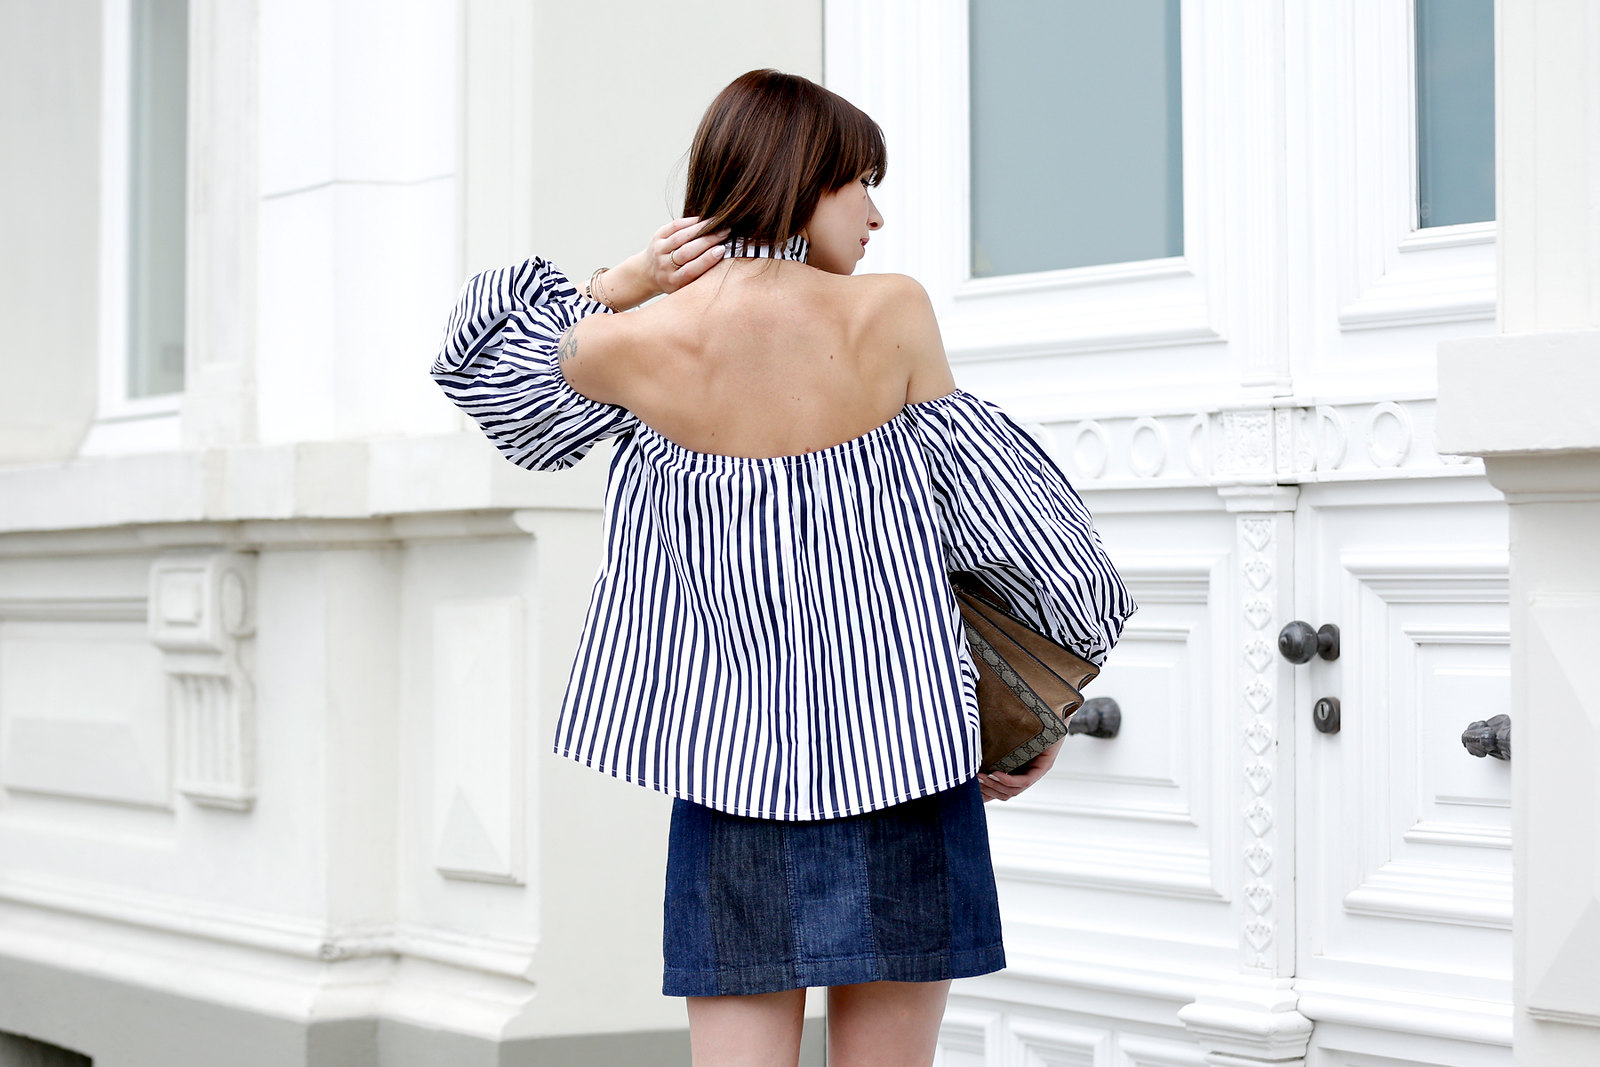 ootd outfit potd lookbook storets off shoulder stripe blouse chic mini denim skit seventies gucci dionysus bag luxury blogger fashionblog cats & dogs modeblogger berlin ricarda schernus dusseldorf fashionblog 2